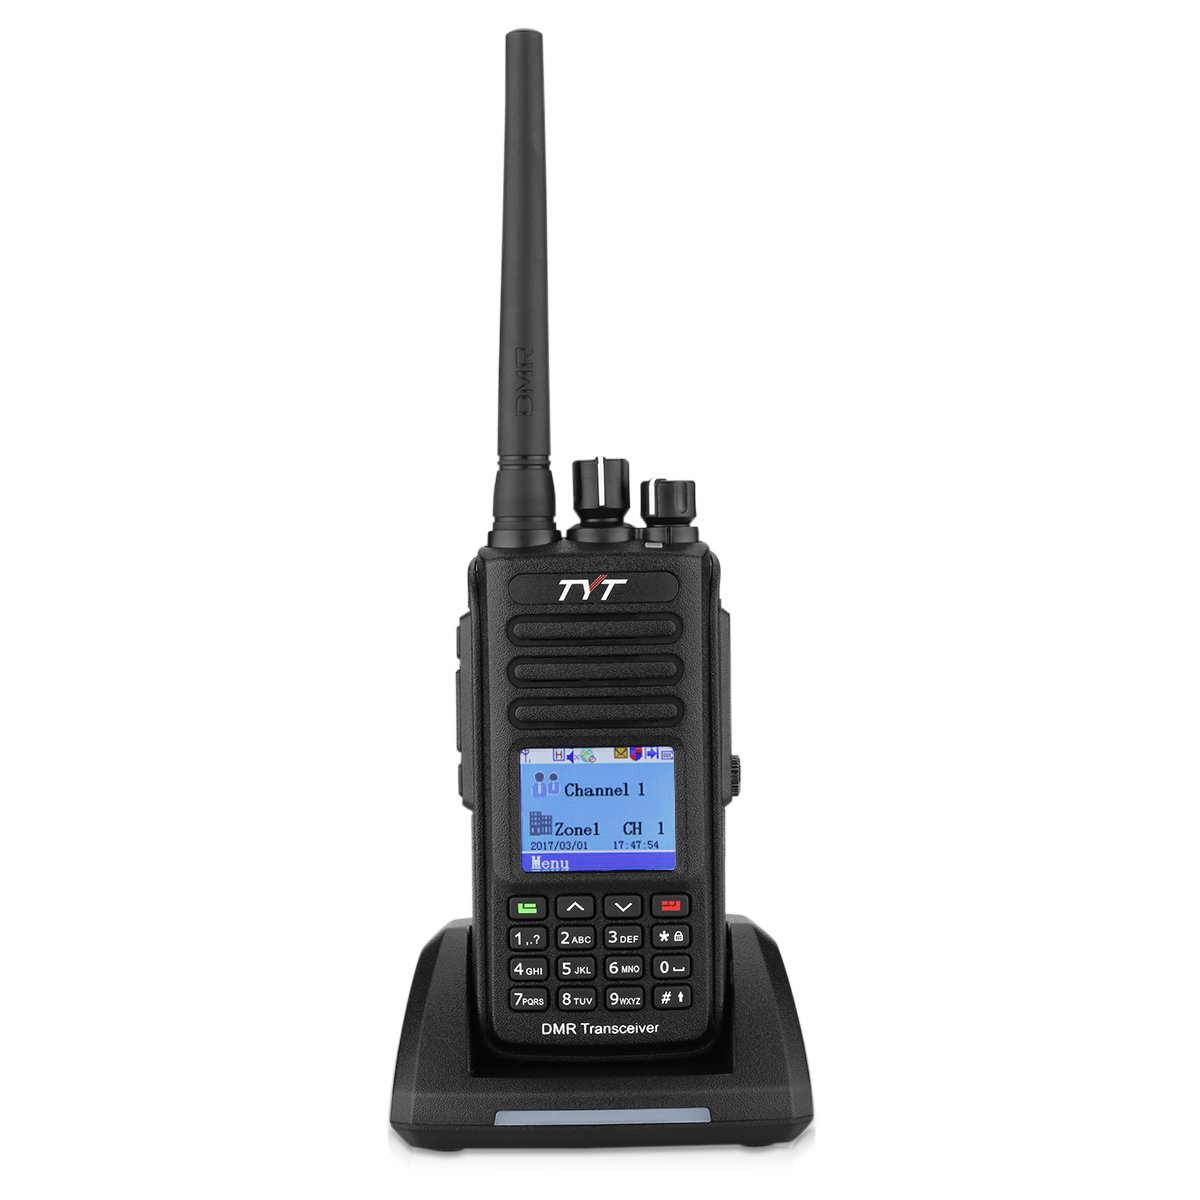 TYTMD-390 DMR Digital Two Way Radio UHF 400-480MHz 5W Walkie Talkie Transceiver With GPS IP67 Waterproof & Dustproof Up to 1000CH Programming Cable with 2 Antenna by TYT